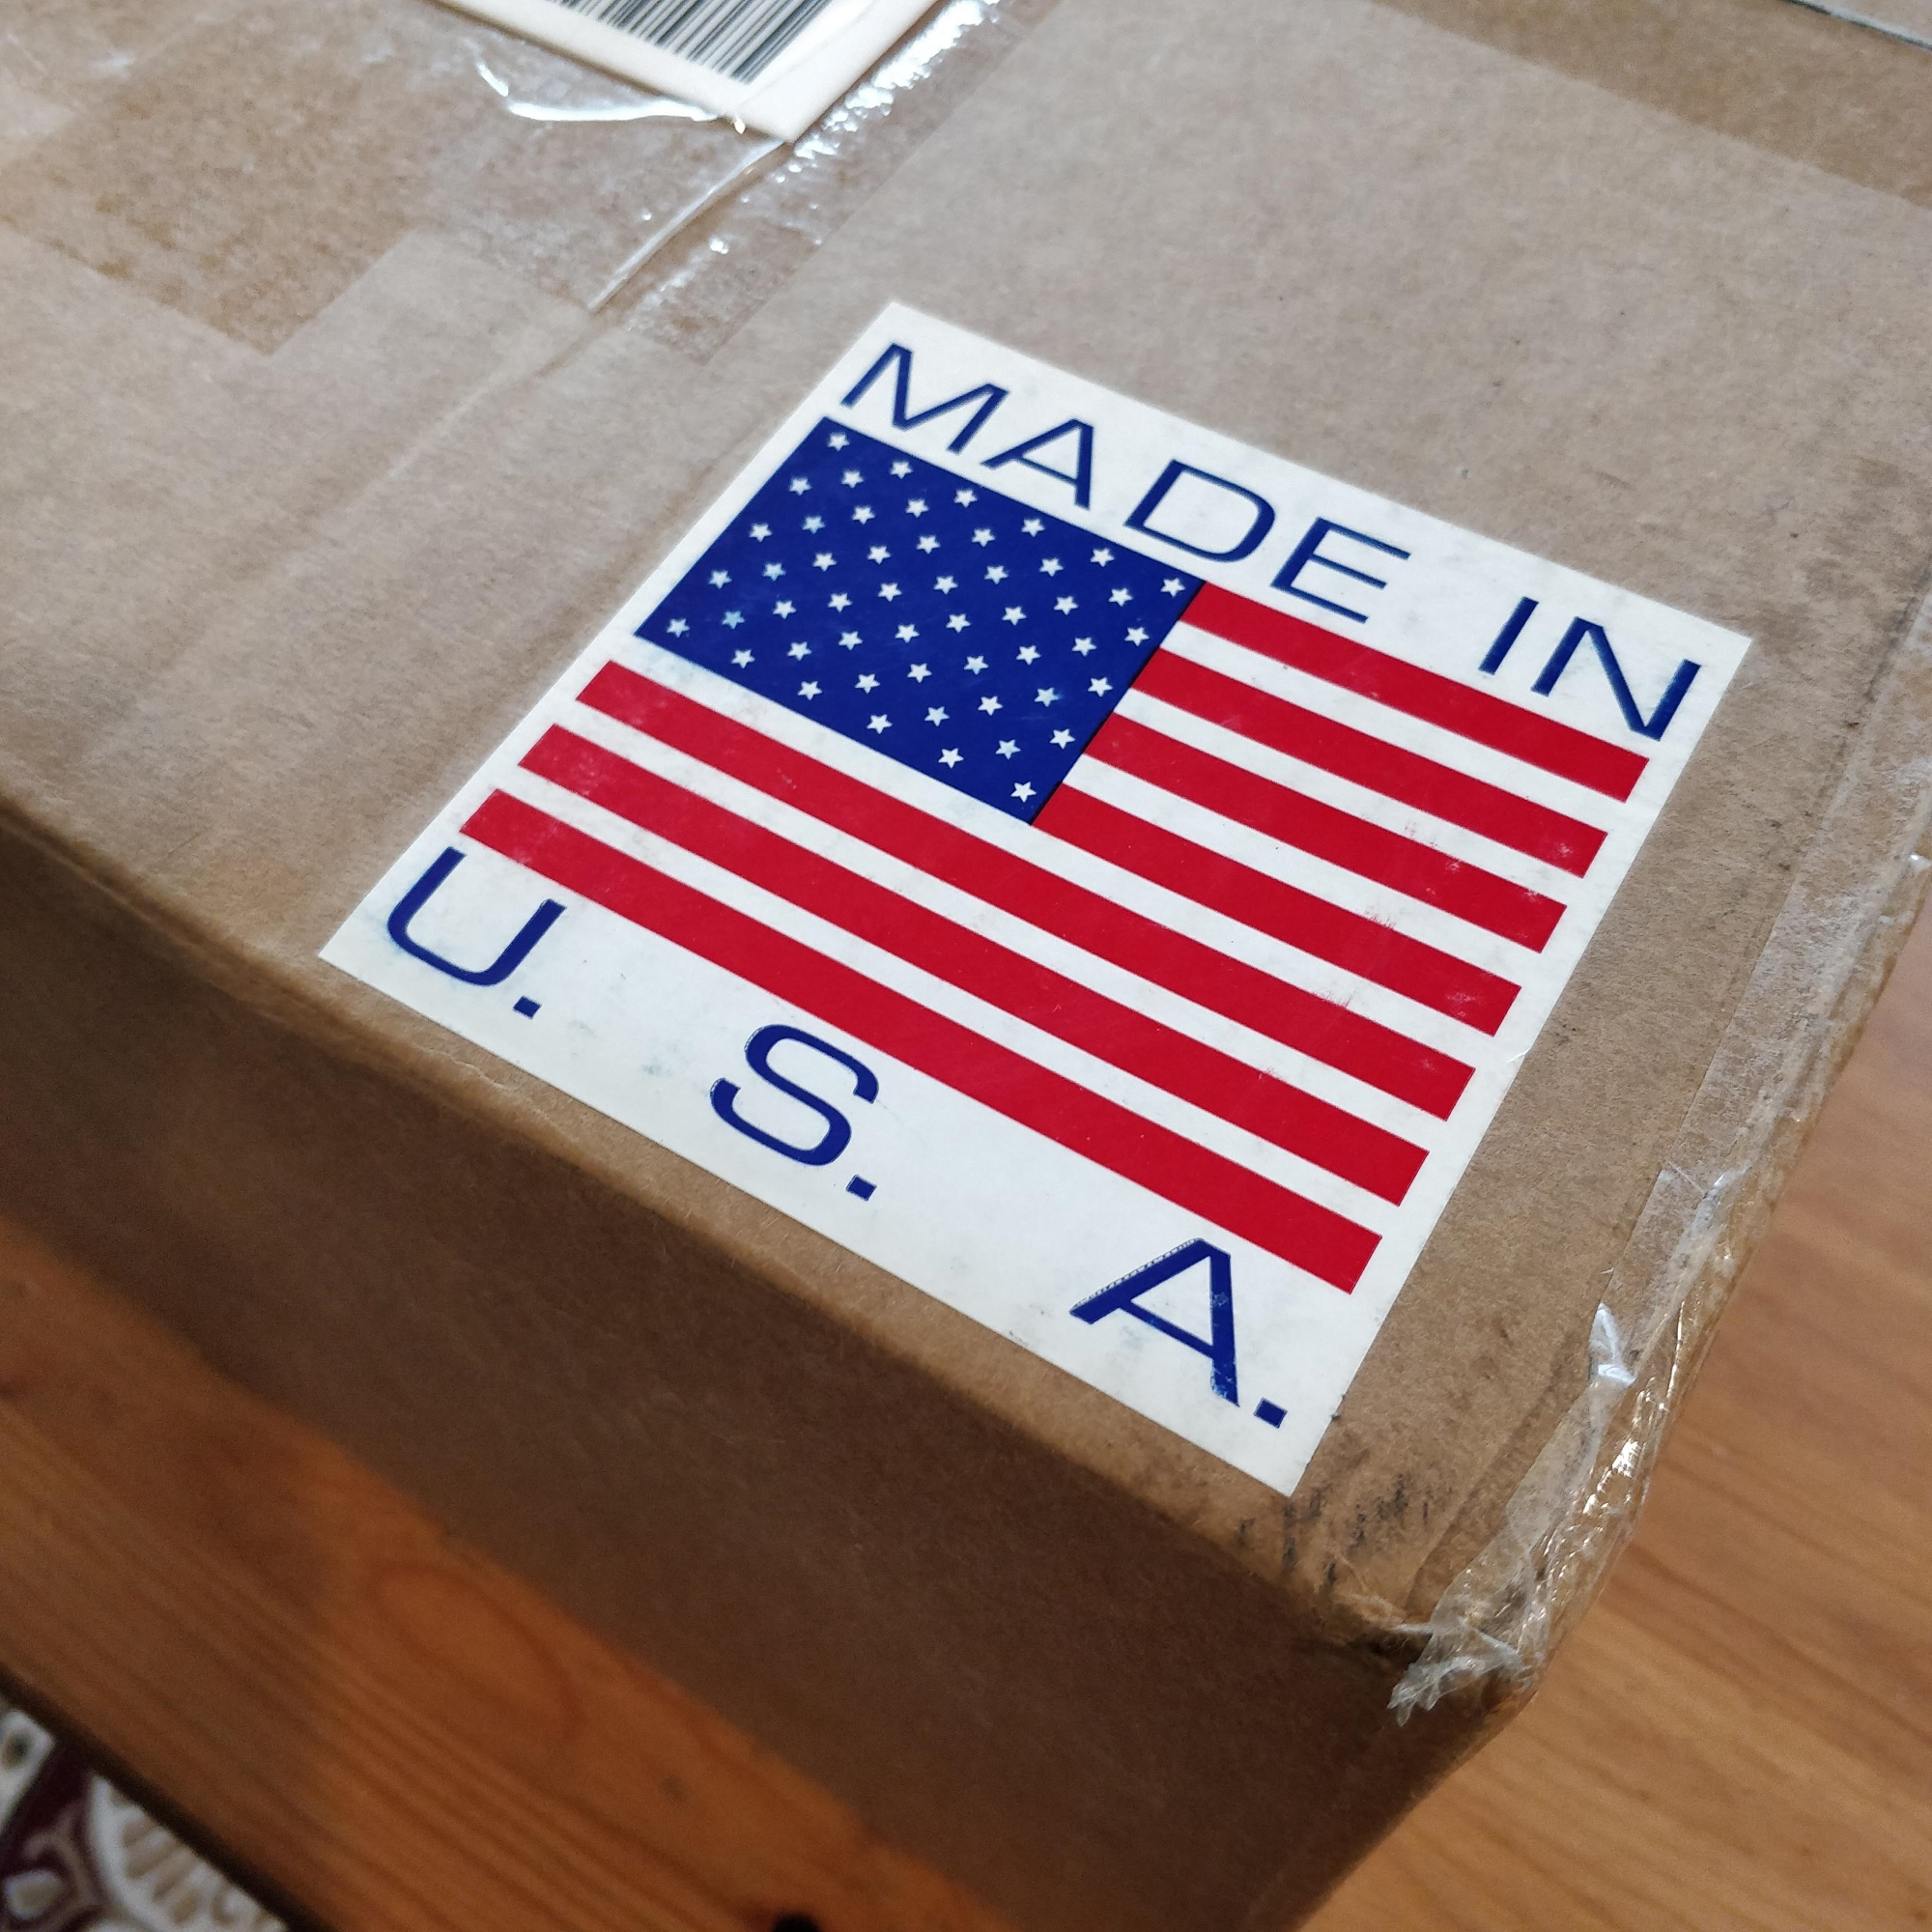 """The corner of a cardboard box with a """"Made in U.S.A."""" American flag sticker attached"""